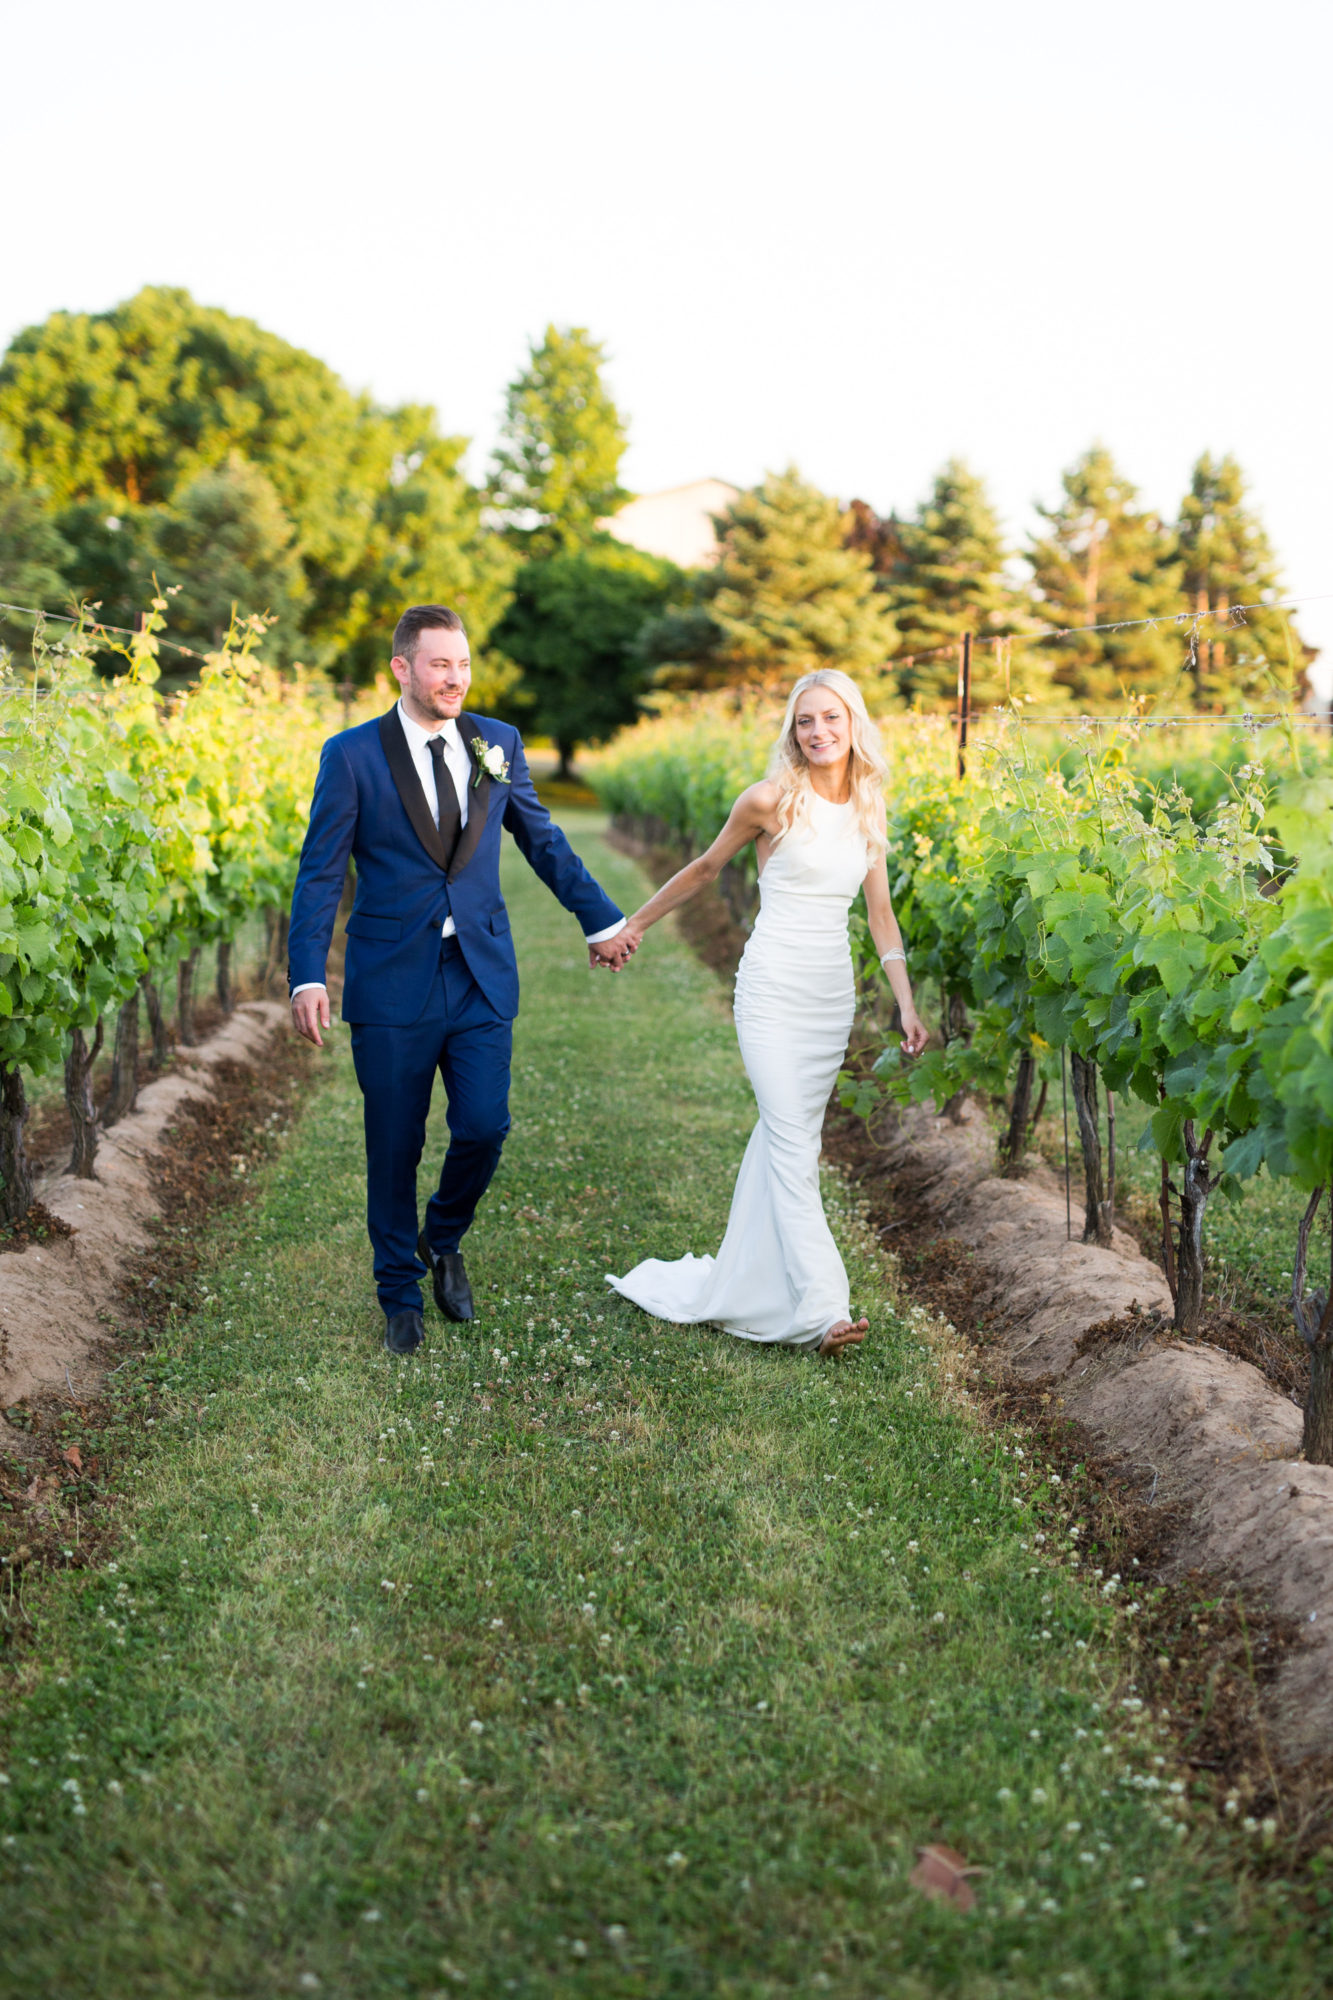 Legends Winery Couple Sunset Toronto Wedding Zsuzsi Pal Photography